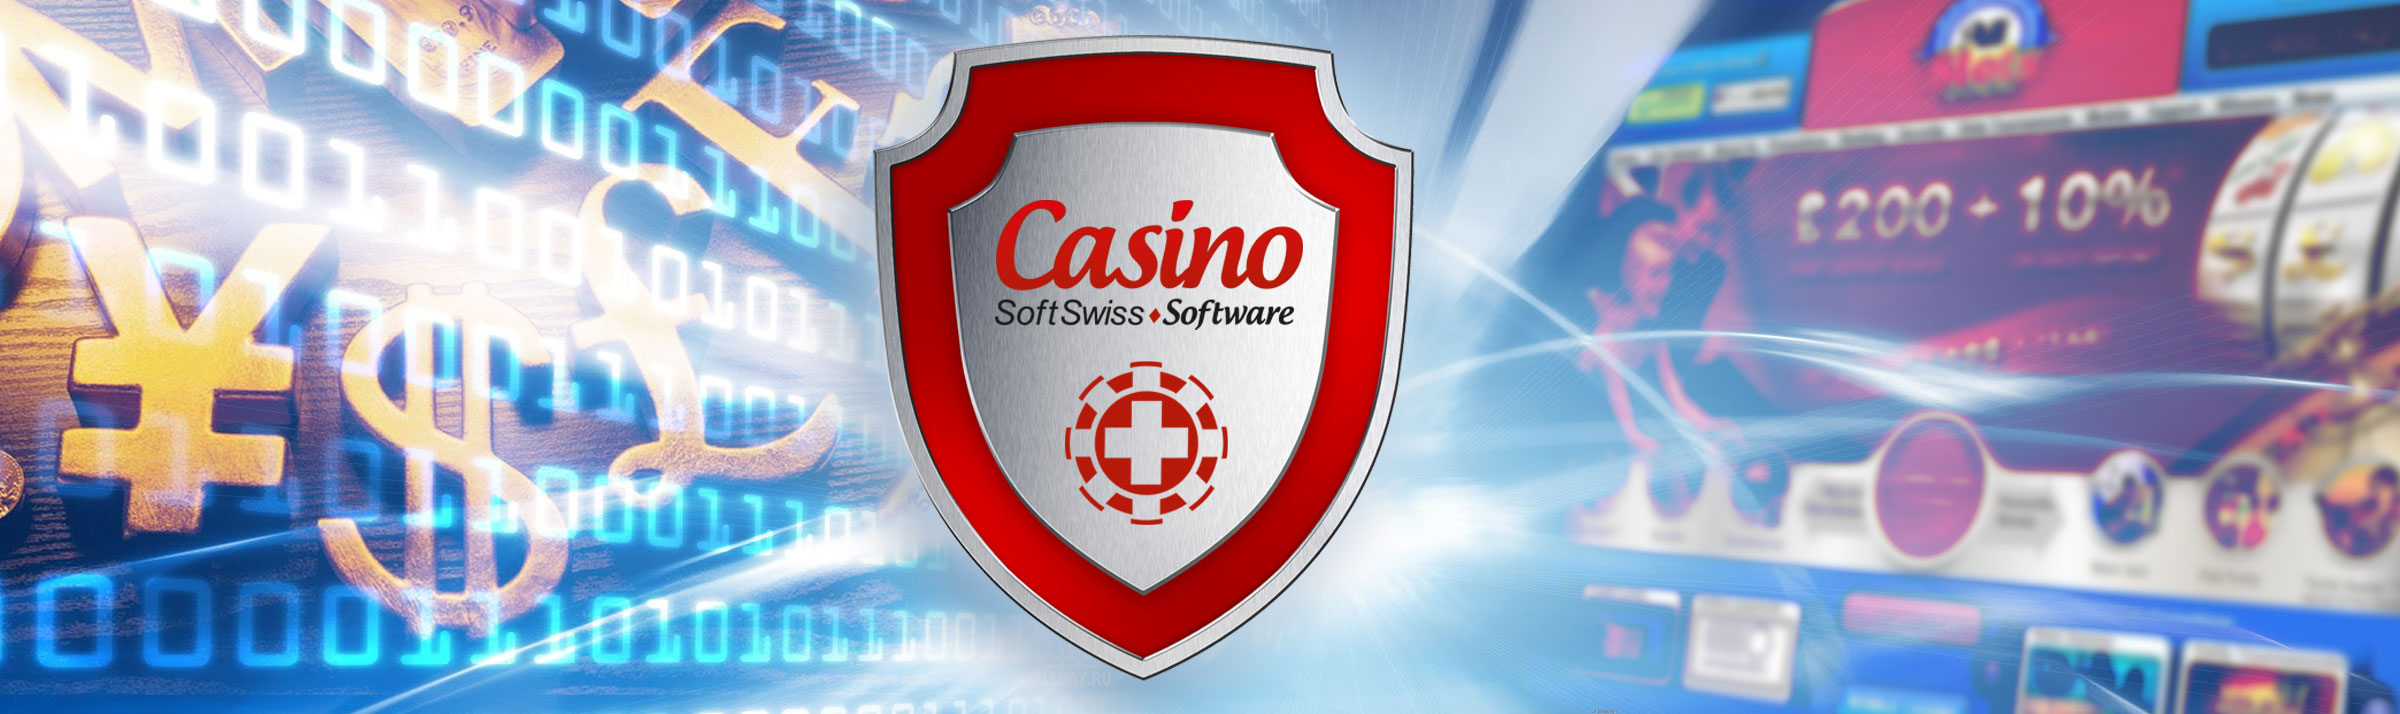 Casino con bitcoins online SoftSwiss 23835